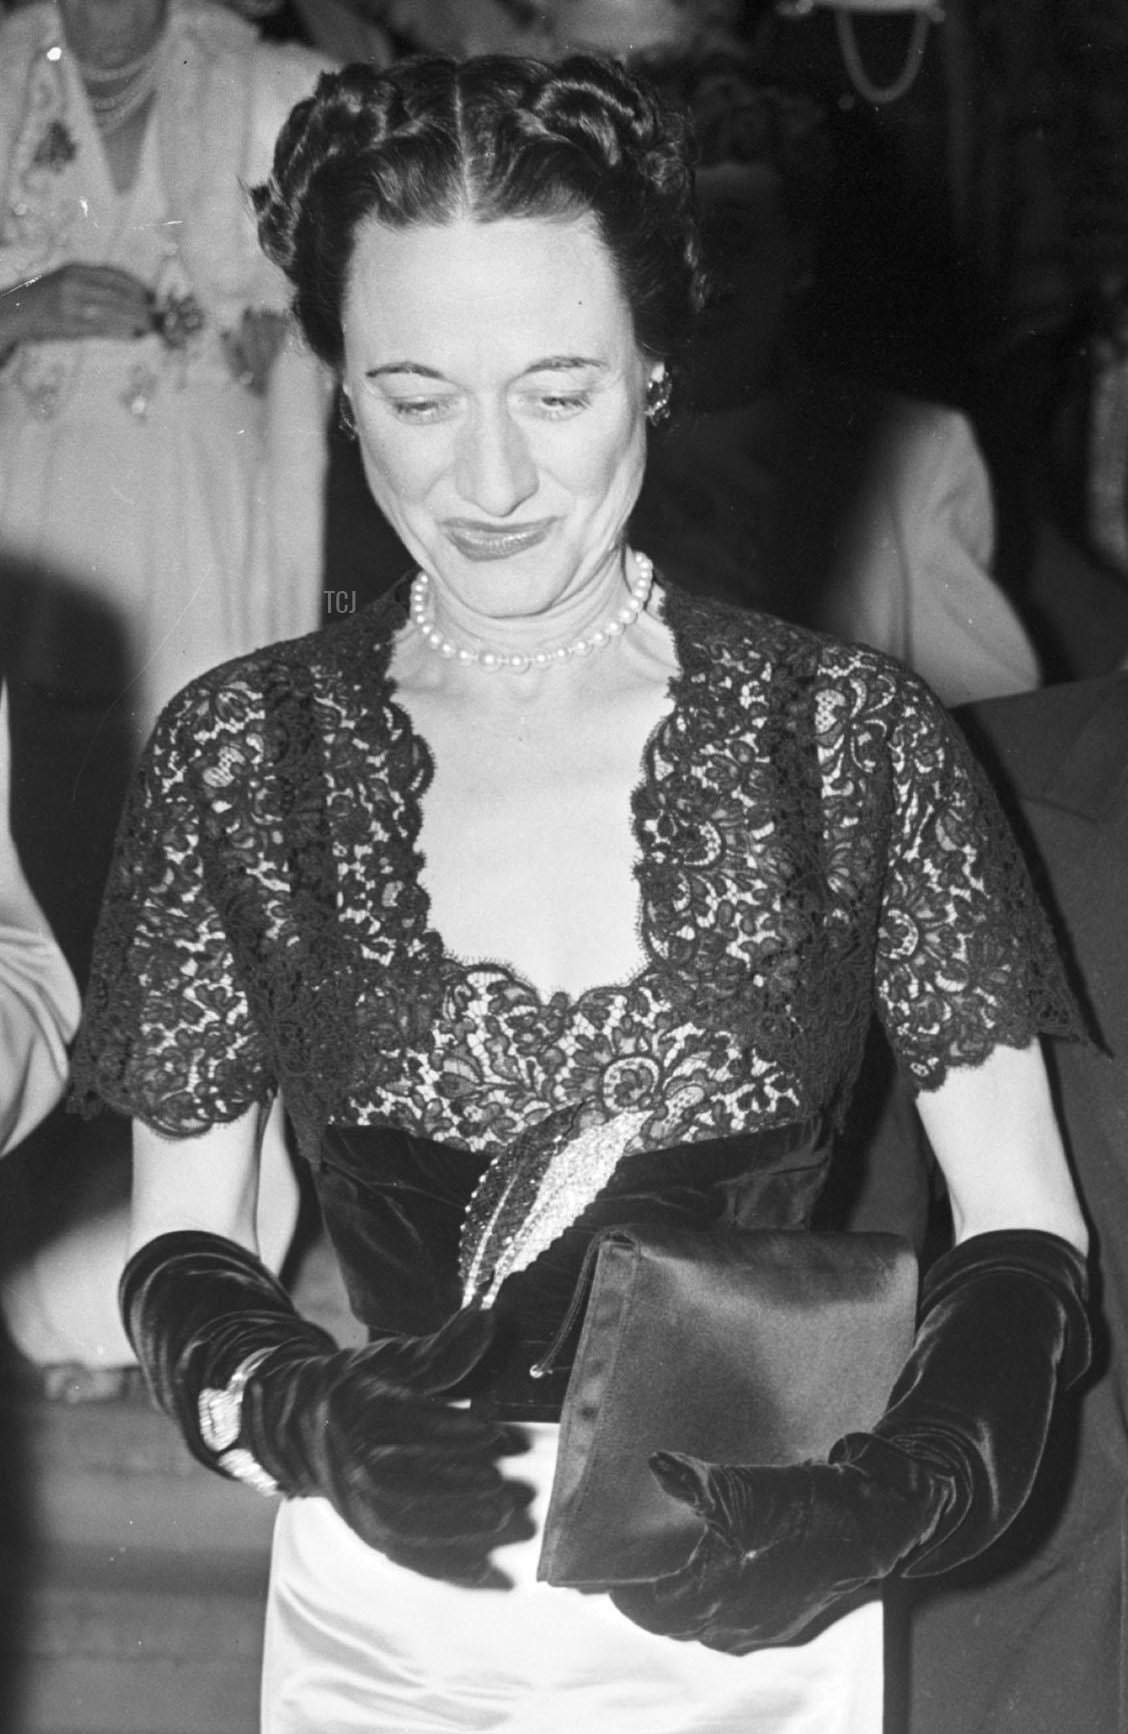 Duke and Duchess of Windsor at the Paramount Theater in Palm Beach, FL, 1948